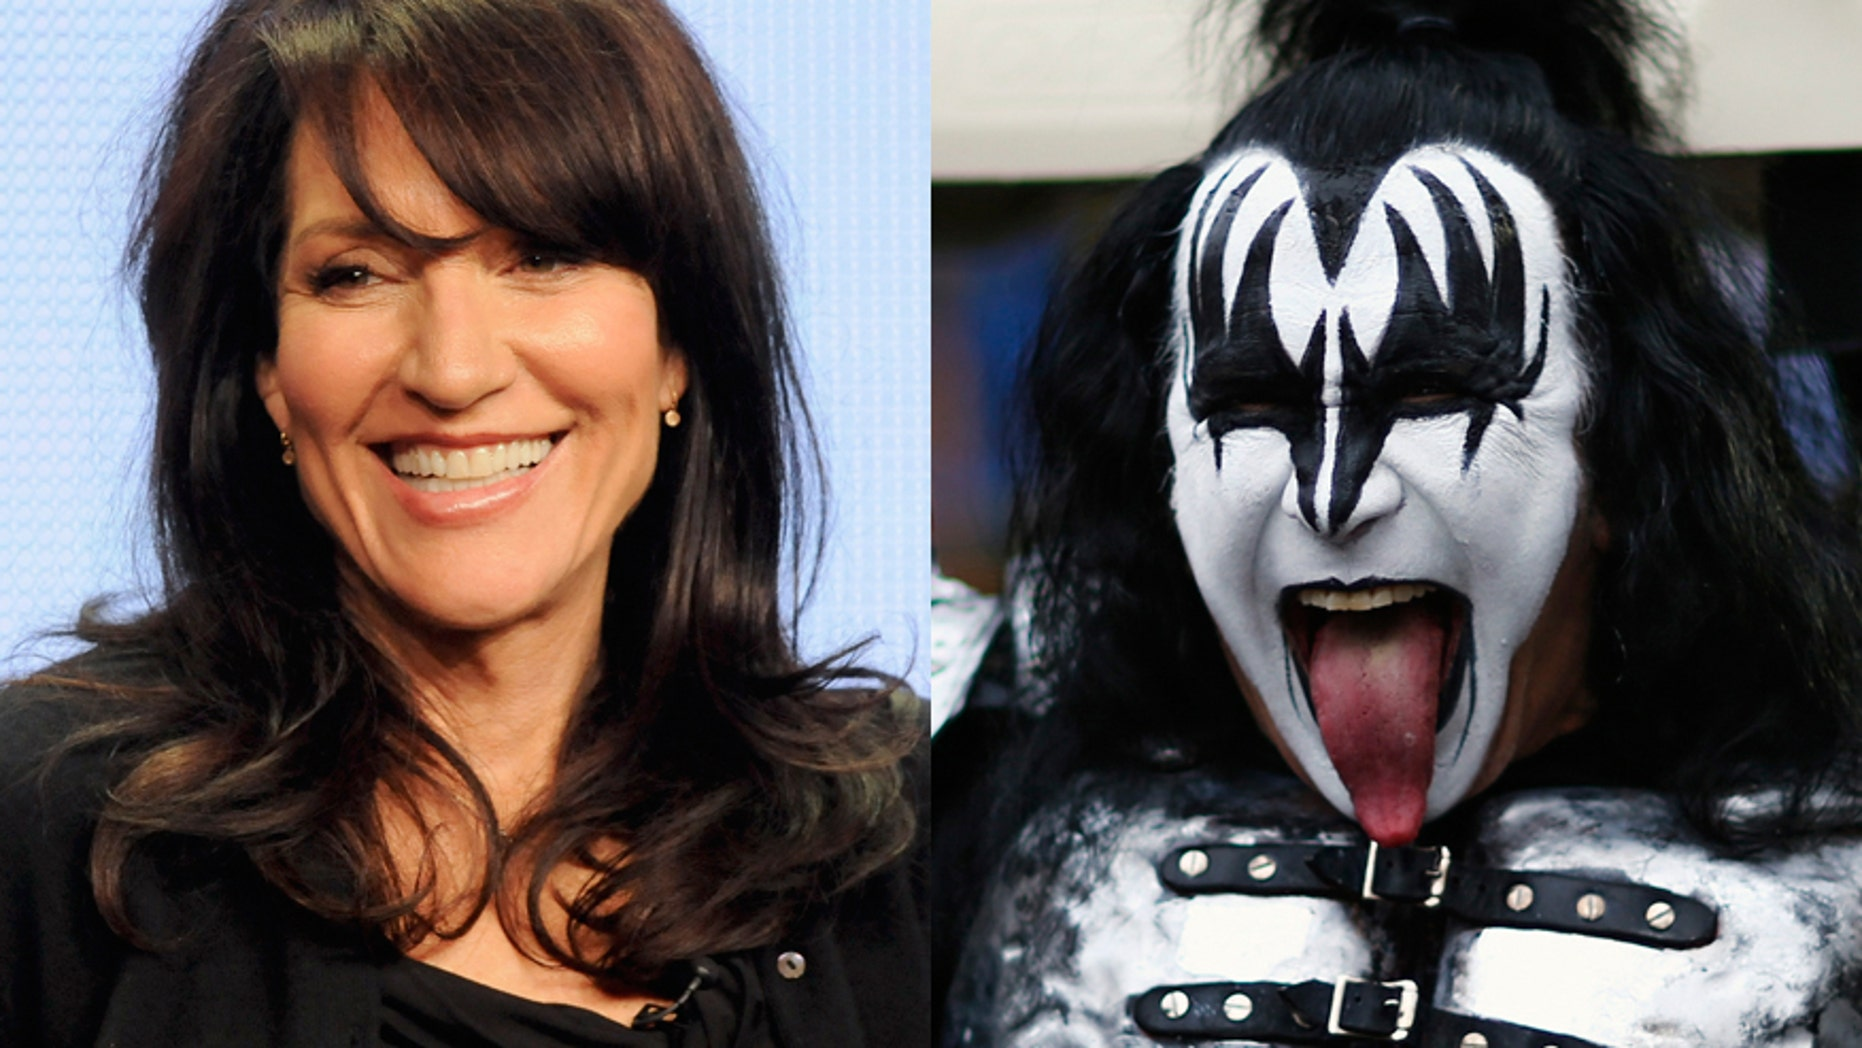 Actress Katey Sagal (left) and Gene Simmons of the rock band KISS.